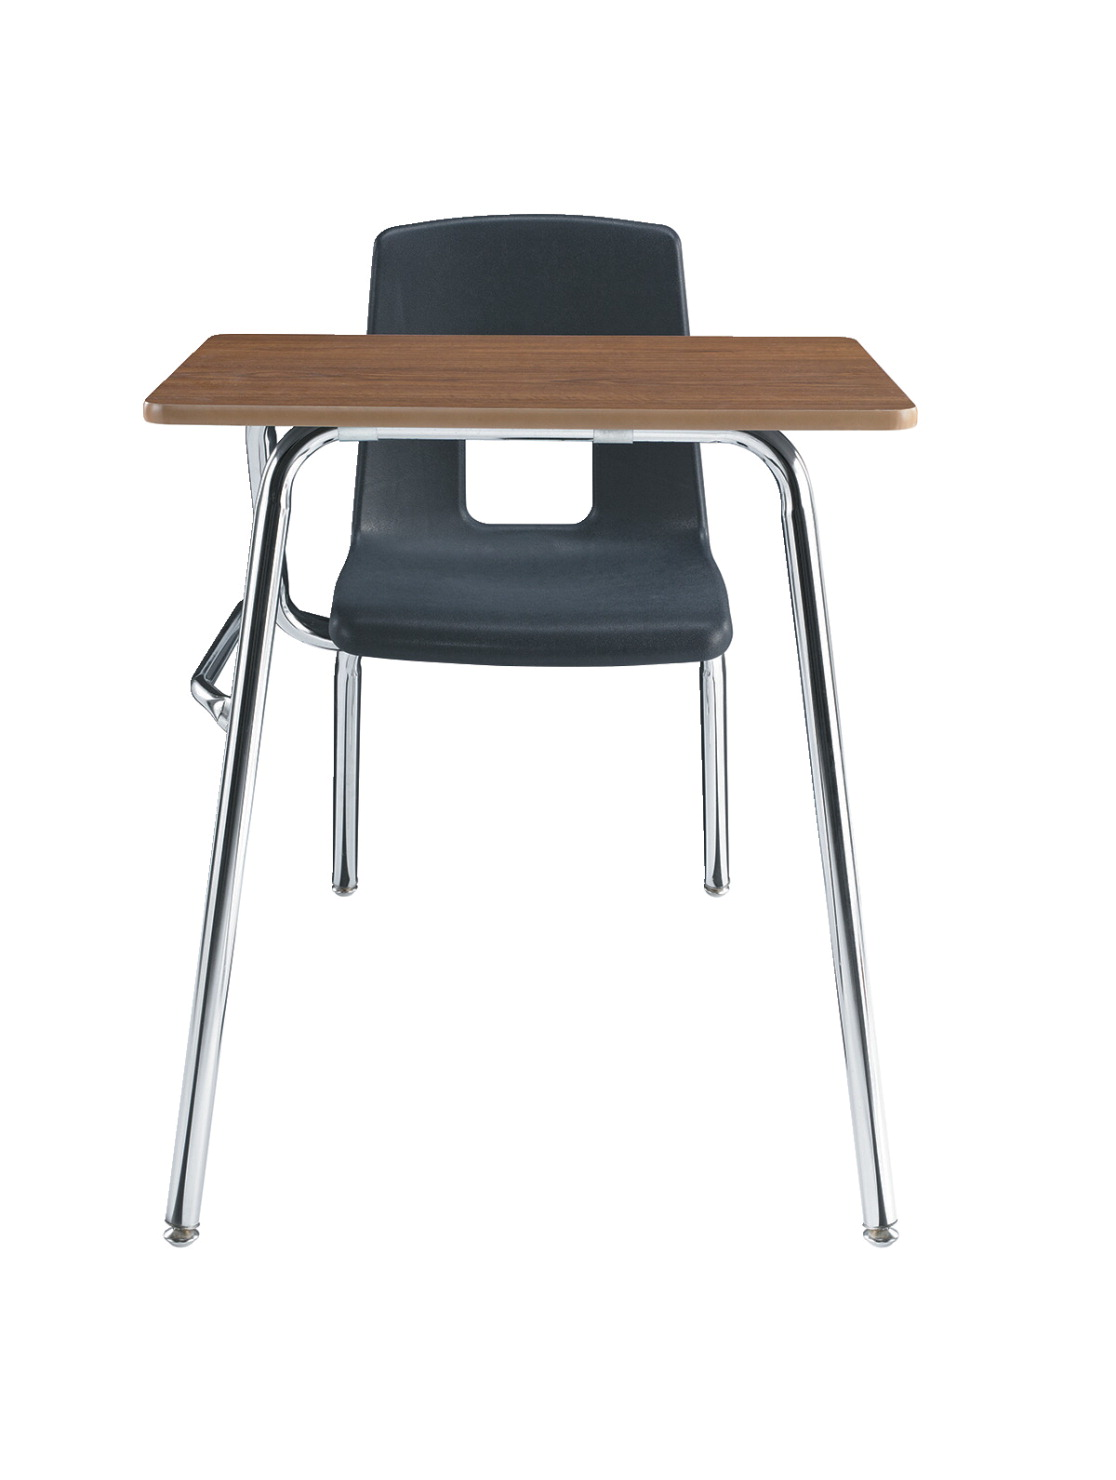 Classroom Select Traditional Combo Desk, 18 x 24 in Laminate Top, 17-1/2 in Seat Height, Chrome Frame